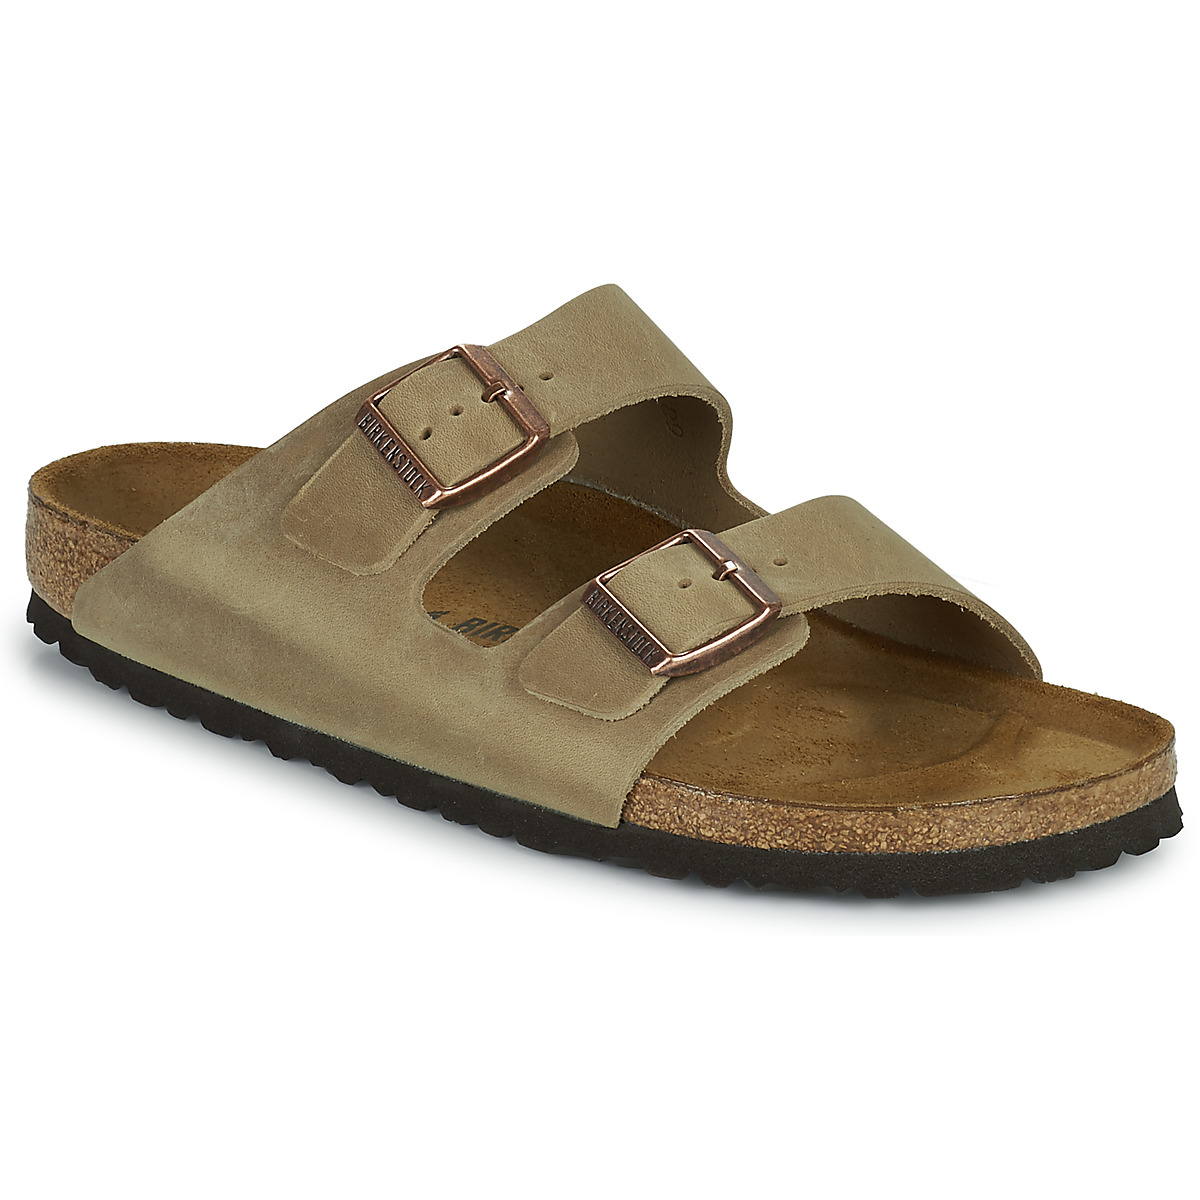 mules birkenstock arizona premium marron livraison gratuite avec chaussures. Black Bedroom Furniture Sets. Home Design Ideas